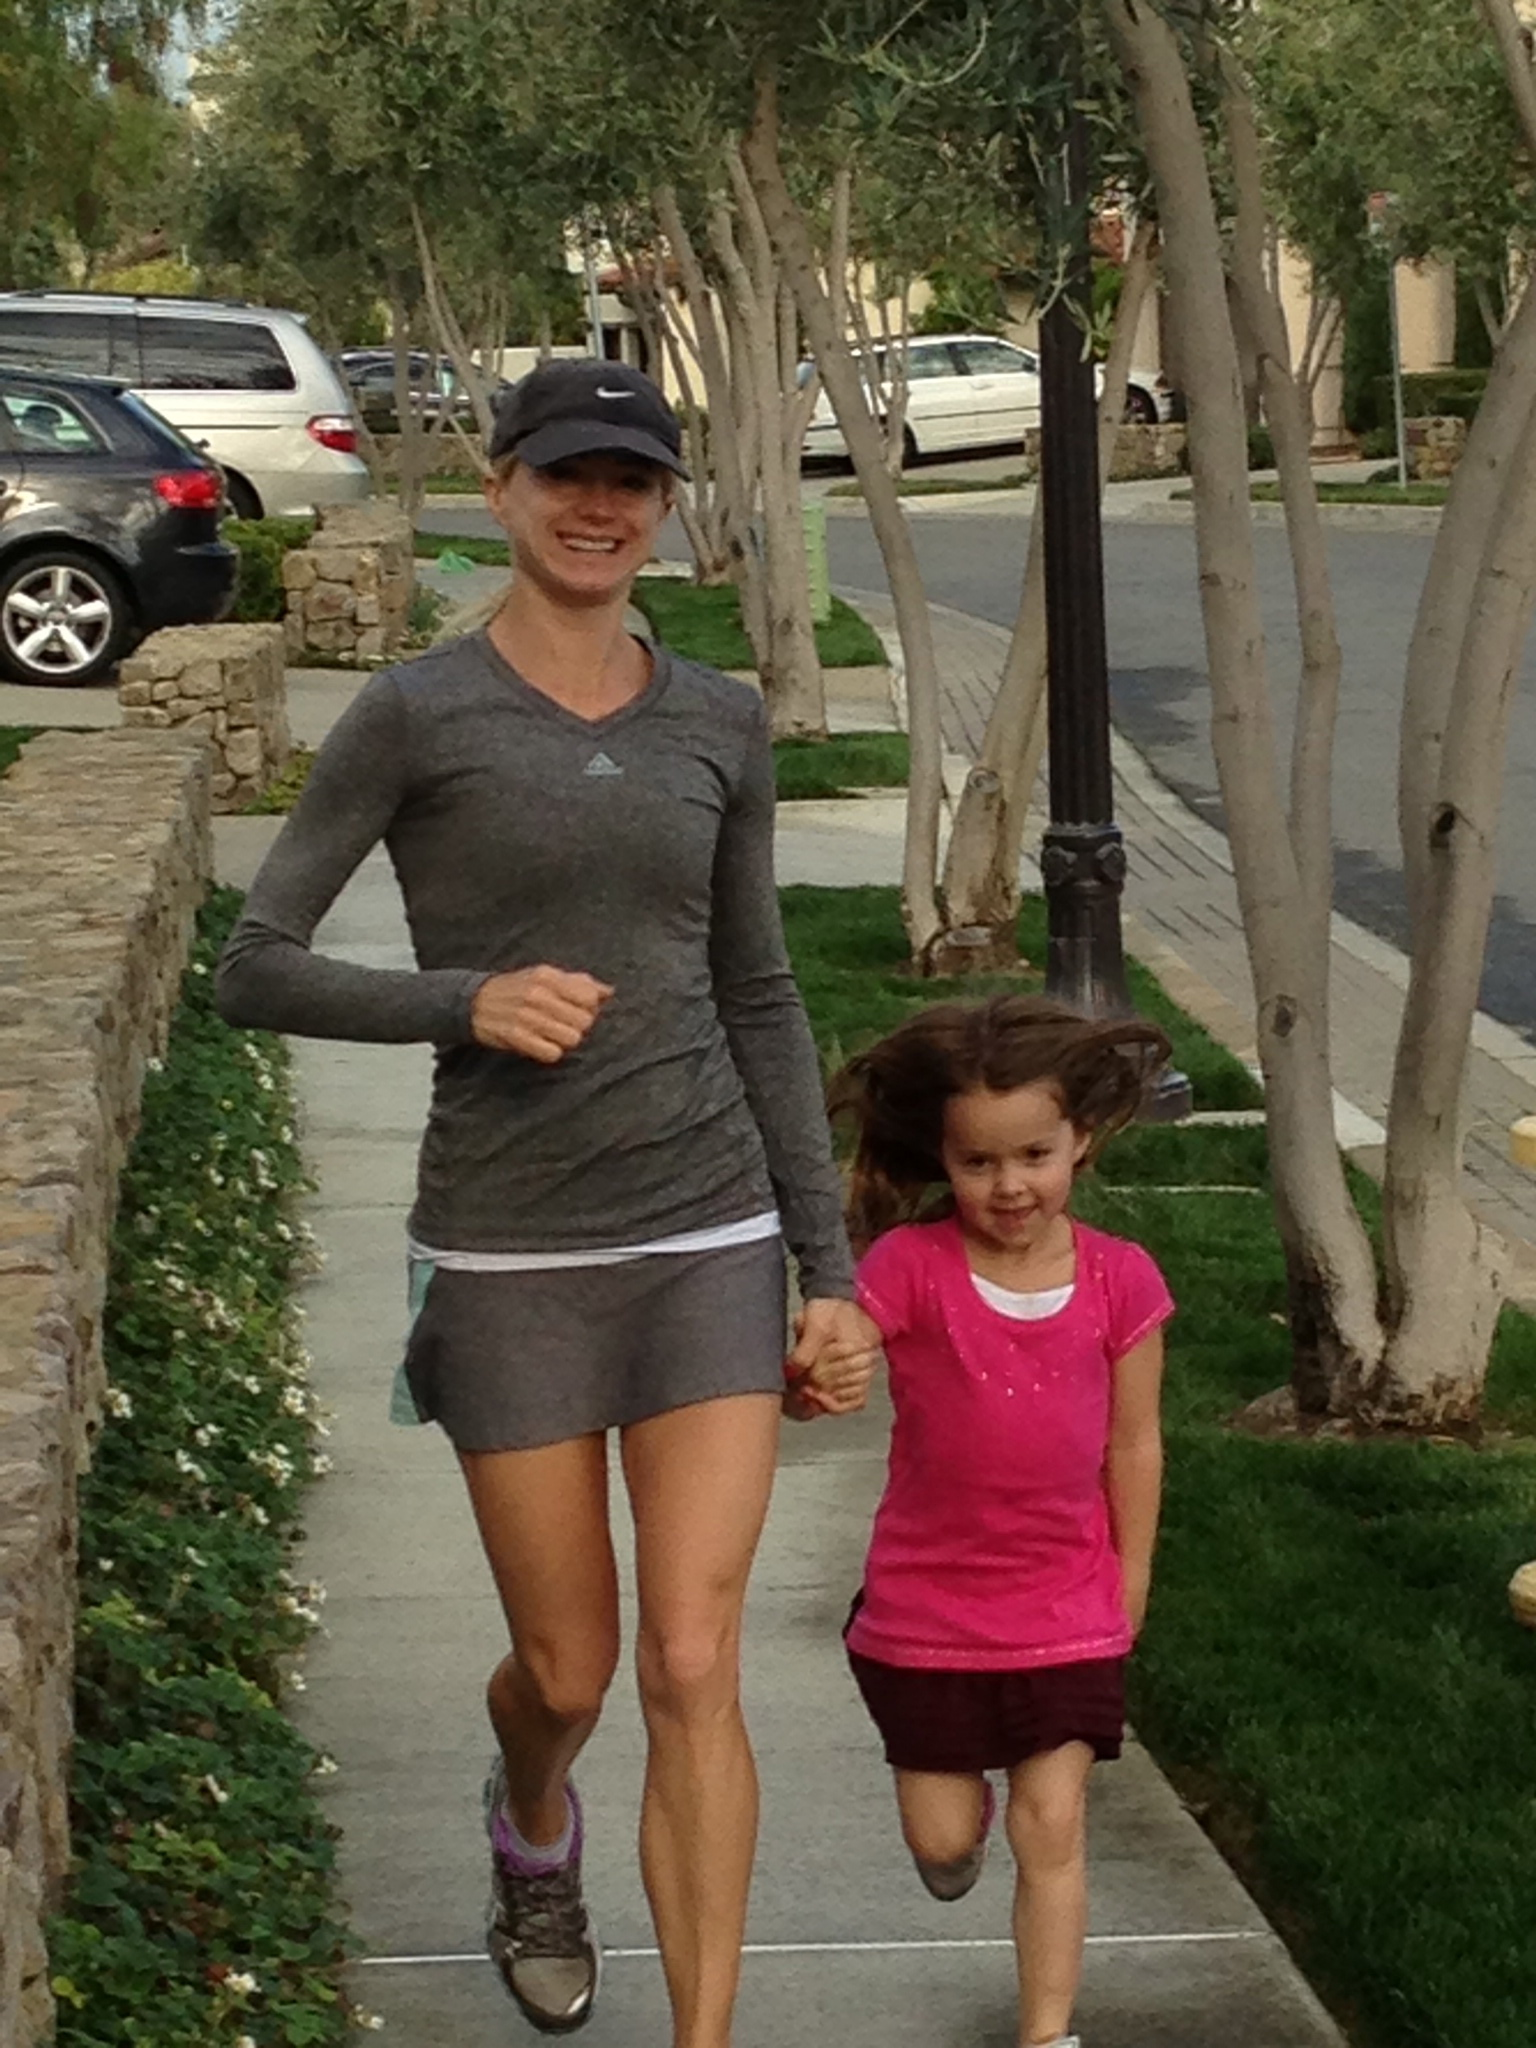 running skirts, runstylish, running skorts, moms running, kids running, lululemon running skirts